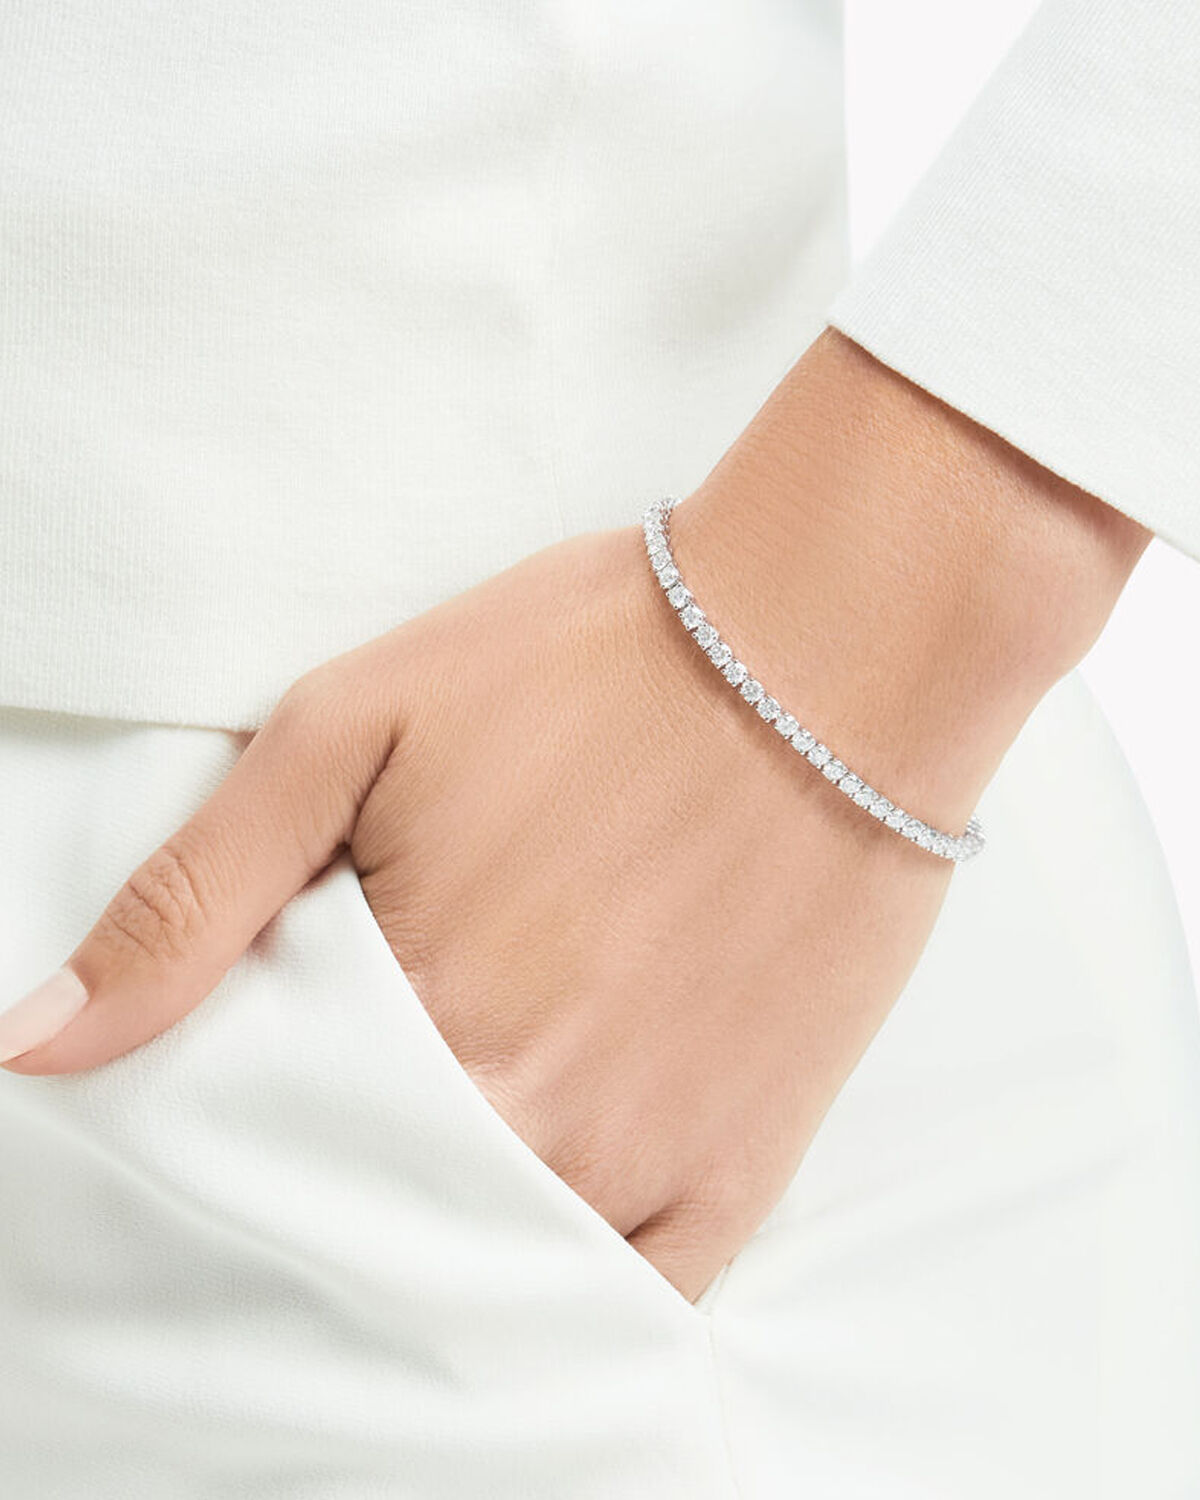 Model wears Graff jewellery collection diamond bracelet